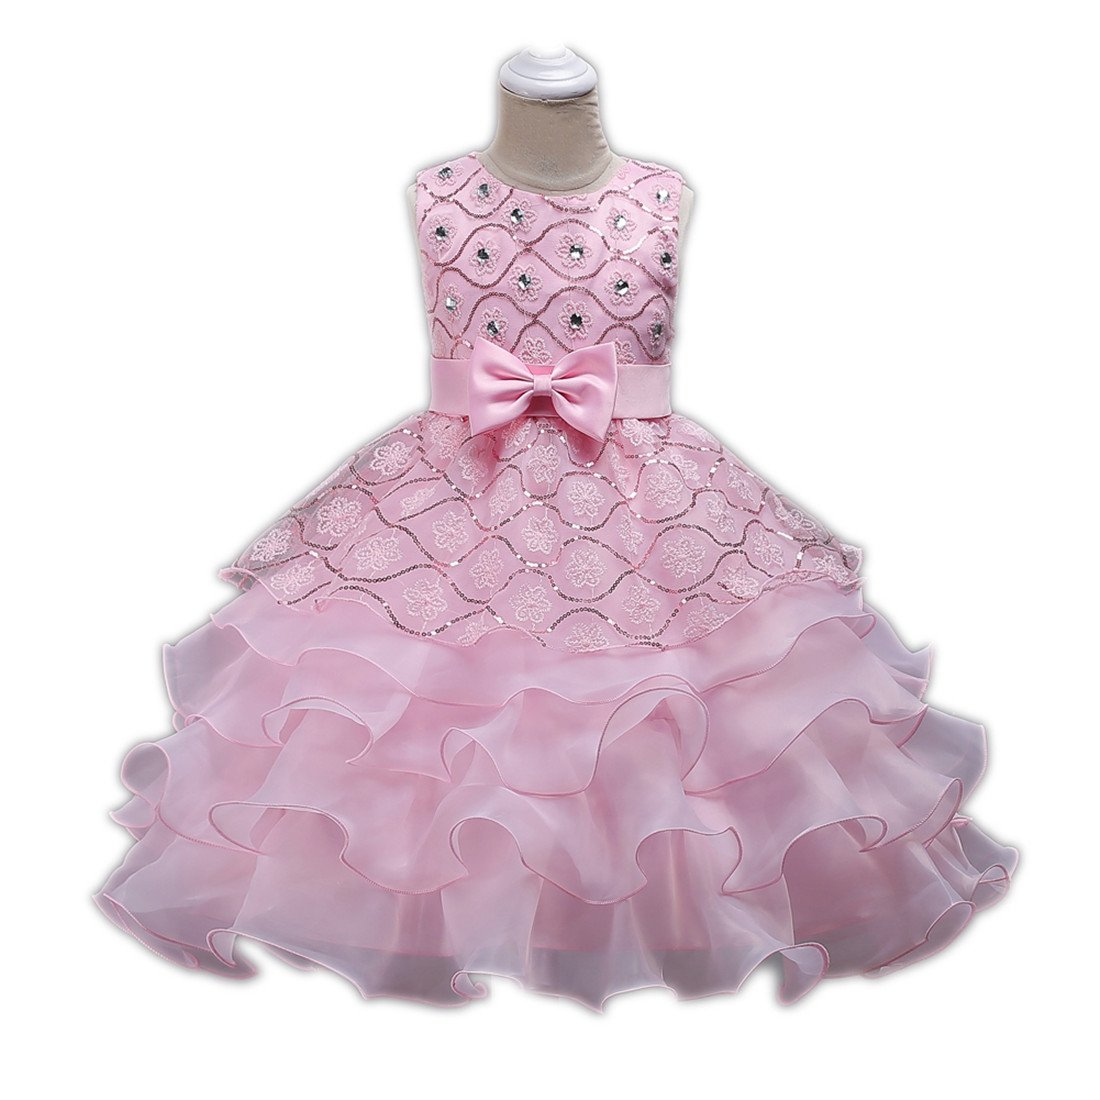 Big Girl Dresses Size 10-12 Wedding Party Prom Special Occasion Tops 7-16 Years Lace A Line Girls Bridesmaid Tutu Dresses Children Birthday Princess Pageant Elegant Gift Beauty Cute (Pink 150)